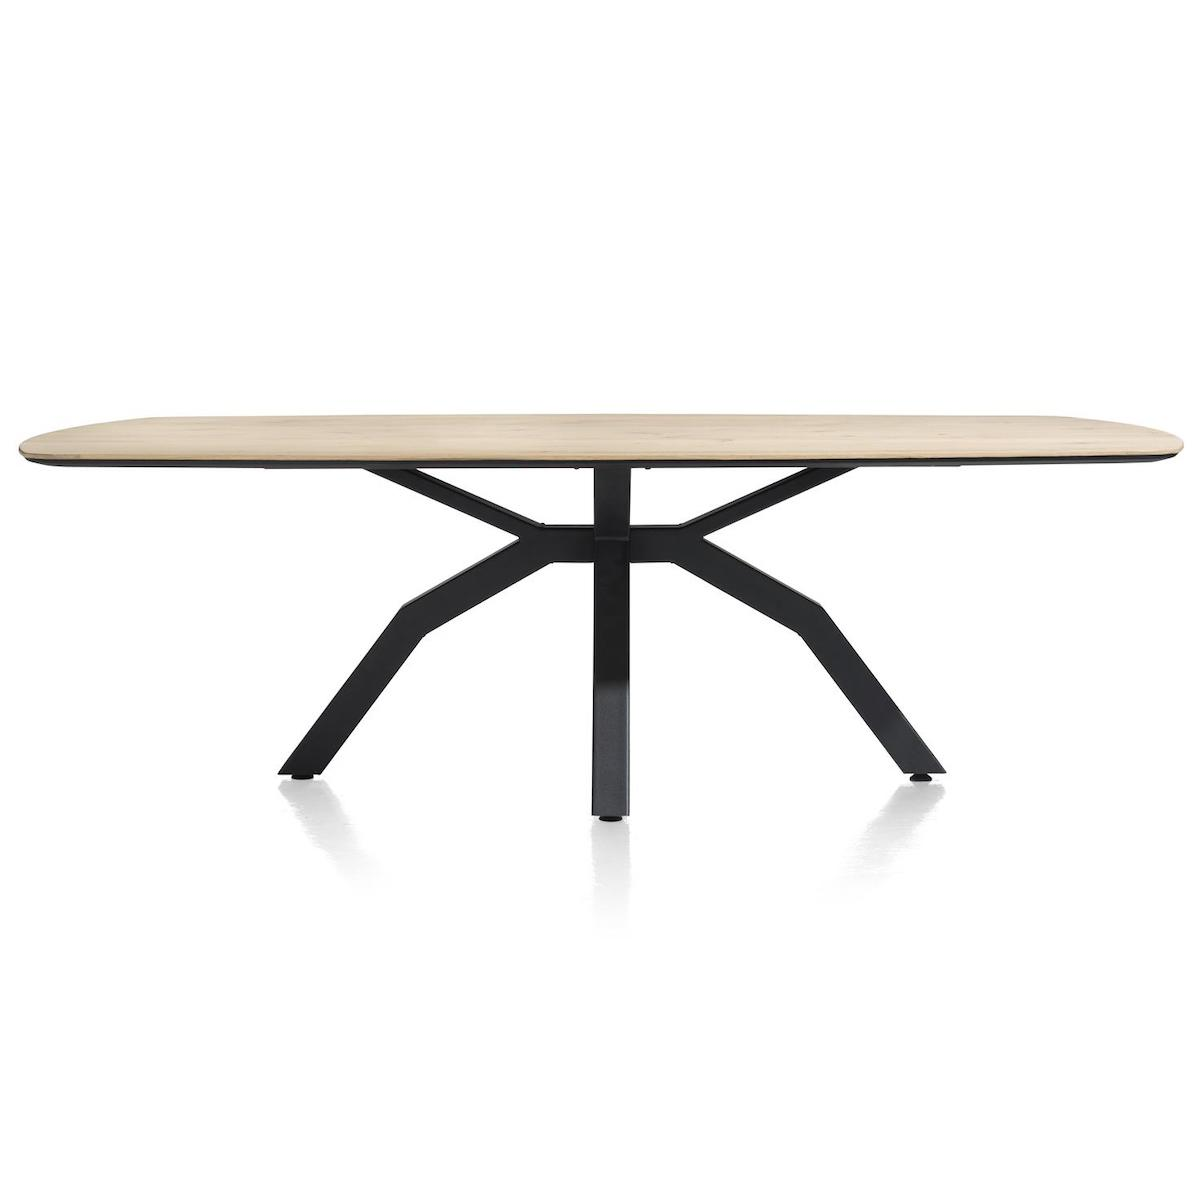 Table ovale 220x108cm LIVADA Henders & Hazel naturel